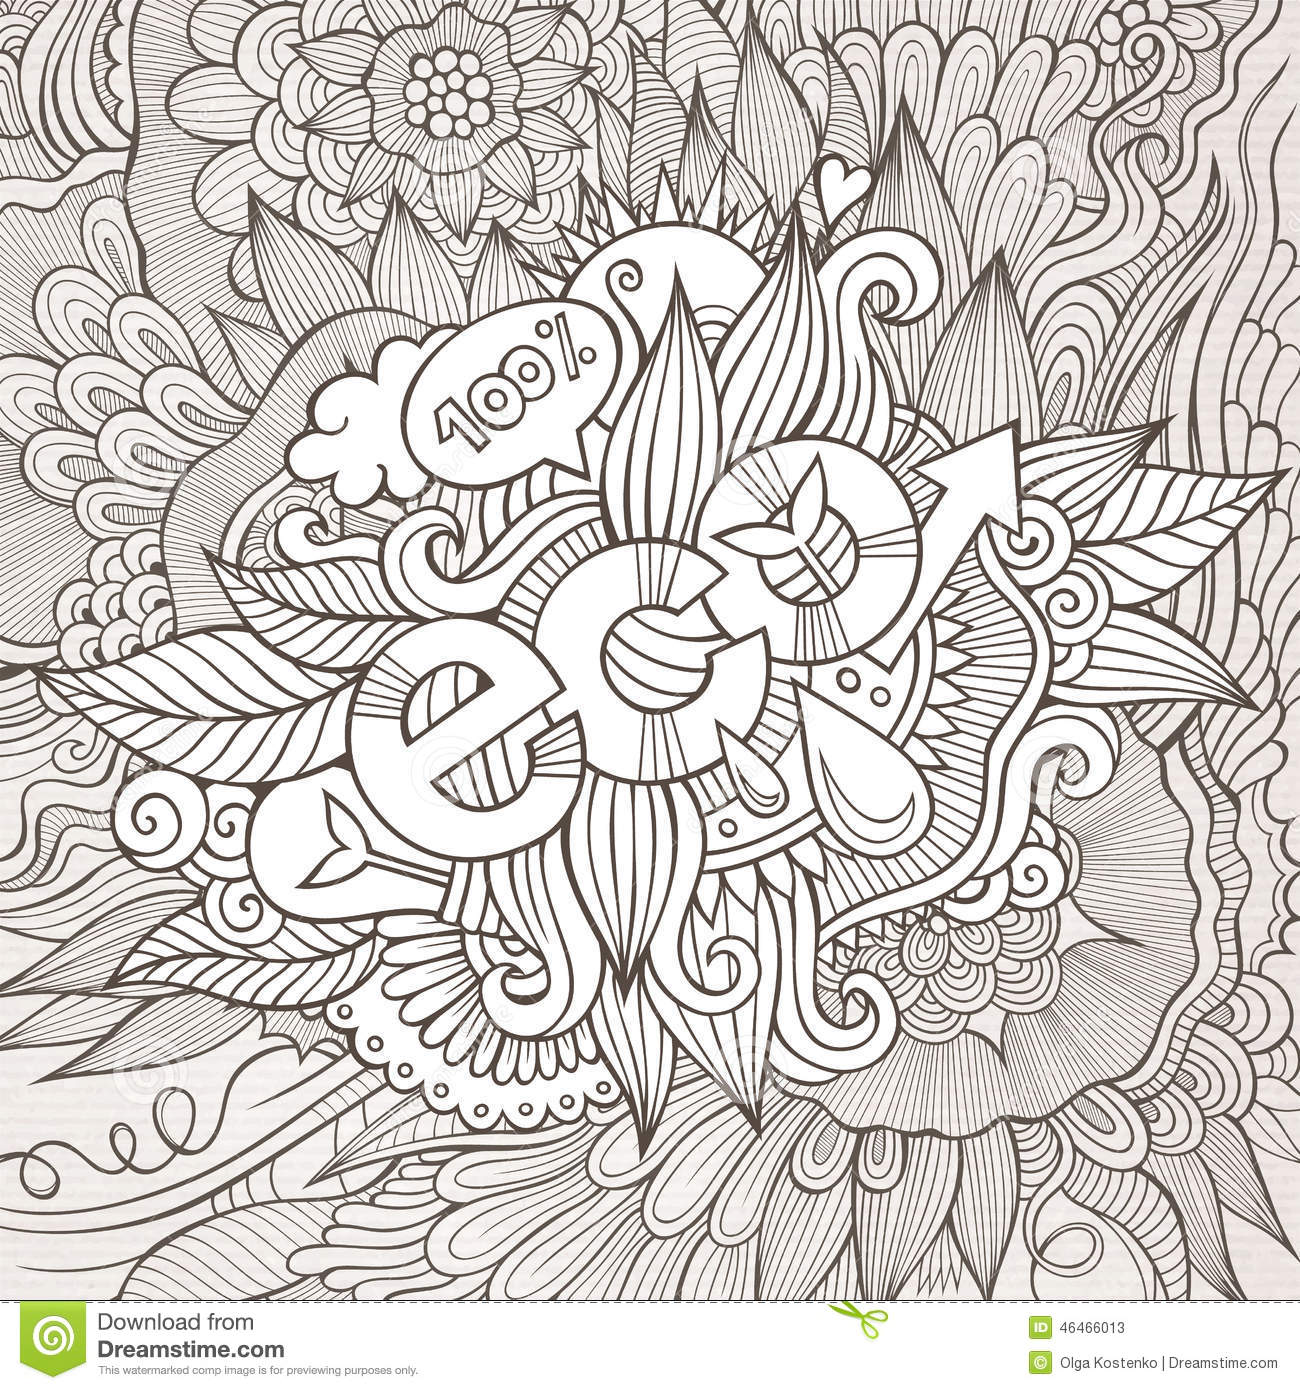 Stock vector music hand lettering and doodles elements - Eco Hand Lettering And Doodles Elements Background Stock Photos